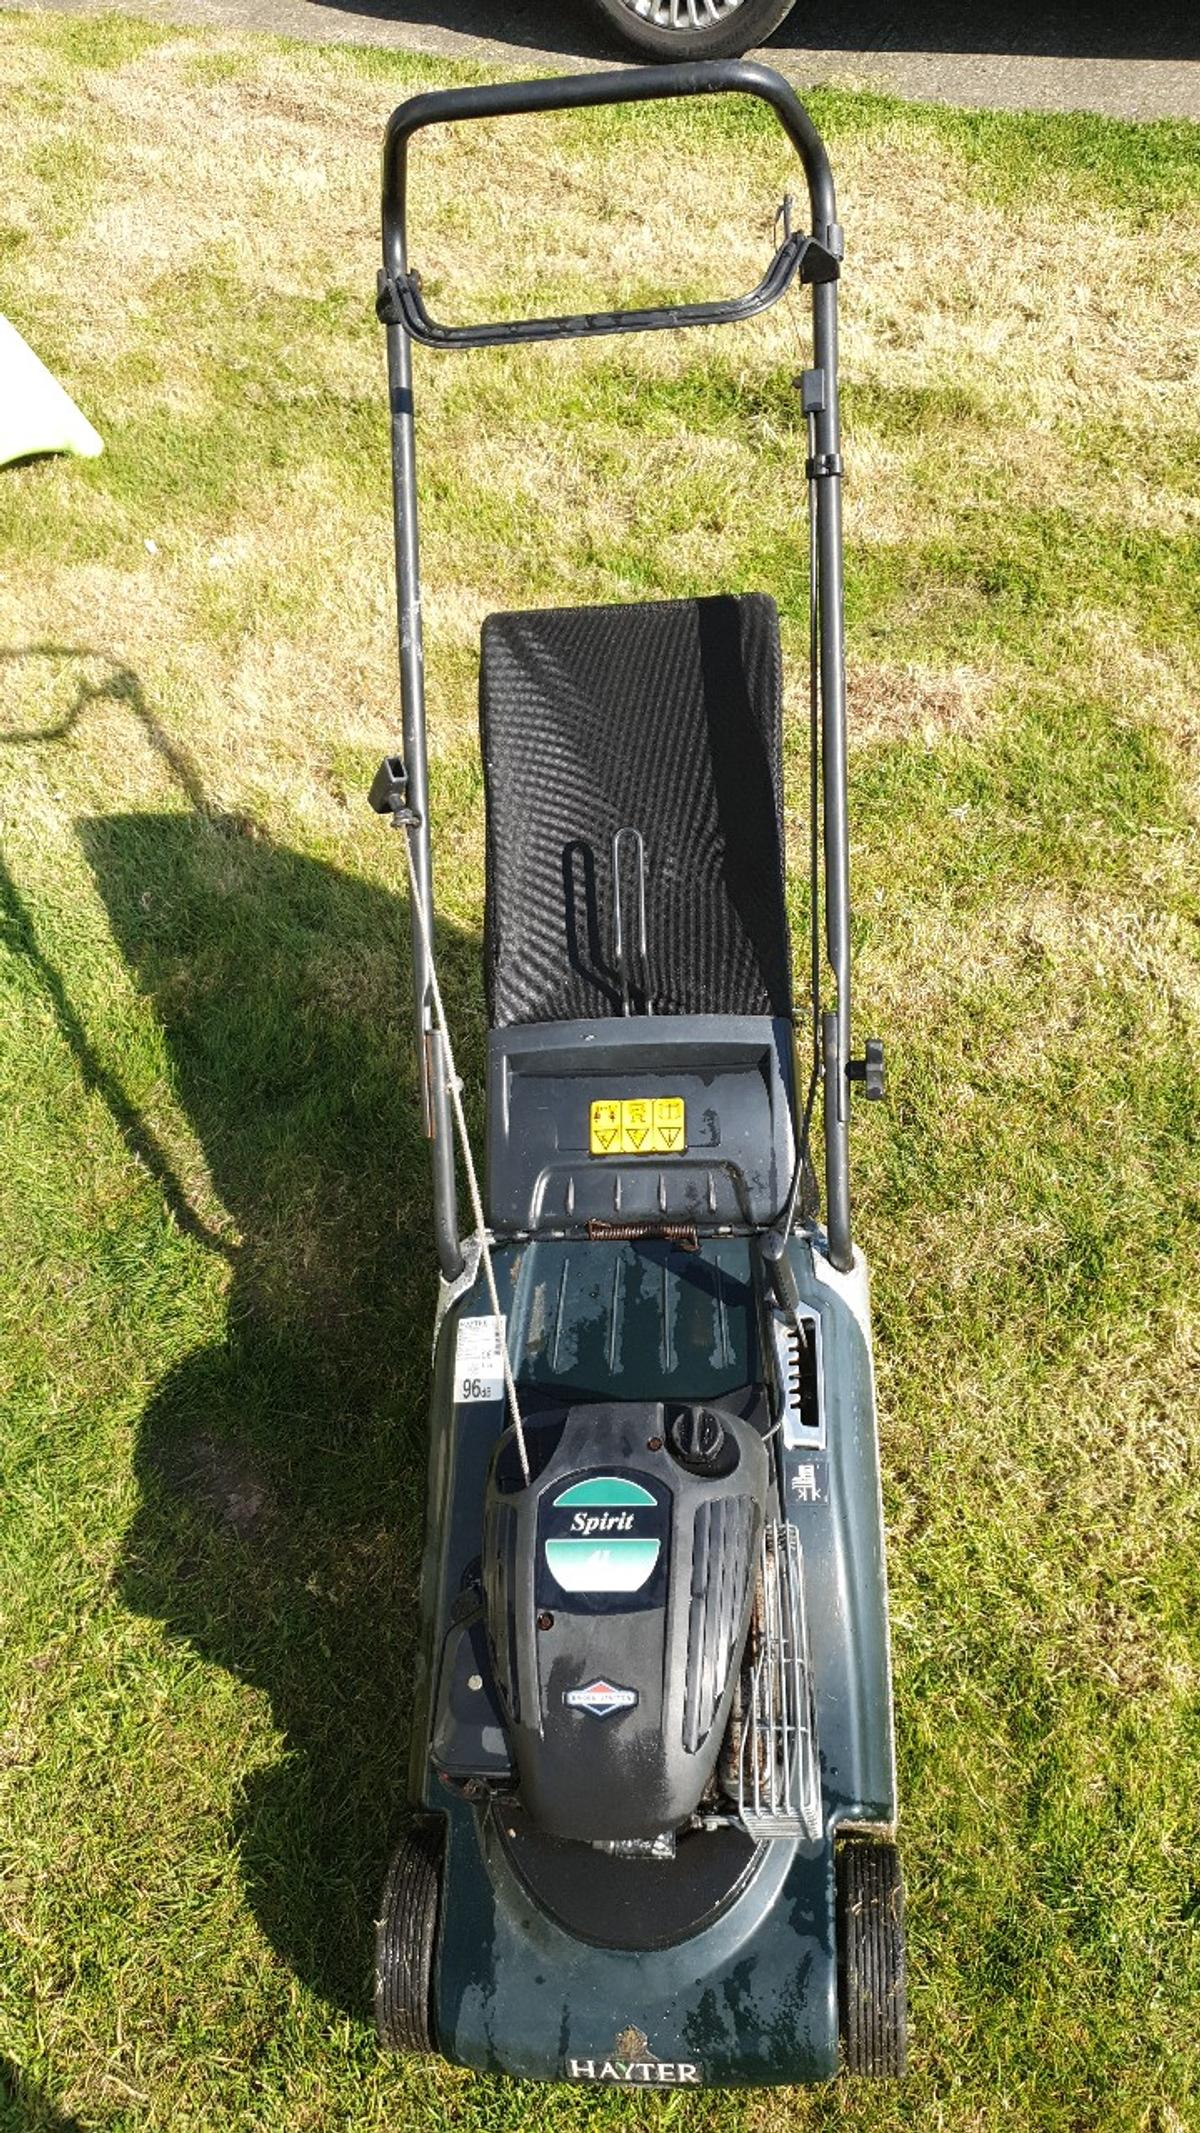 Spirit 41 Lawnmower. starts but cuts out after a while. Needs a good service.